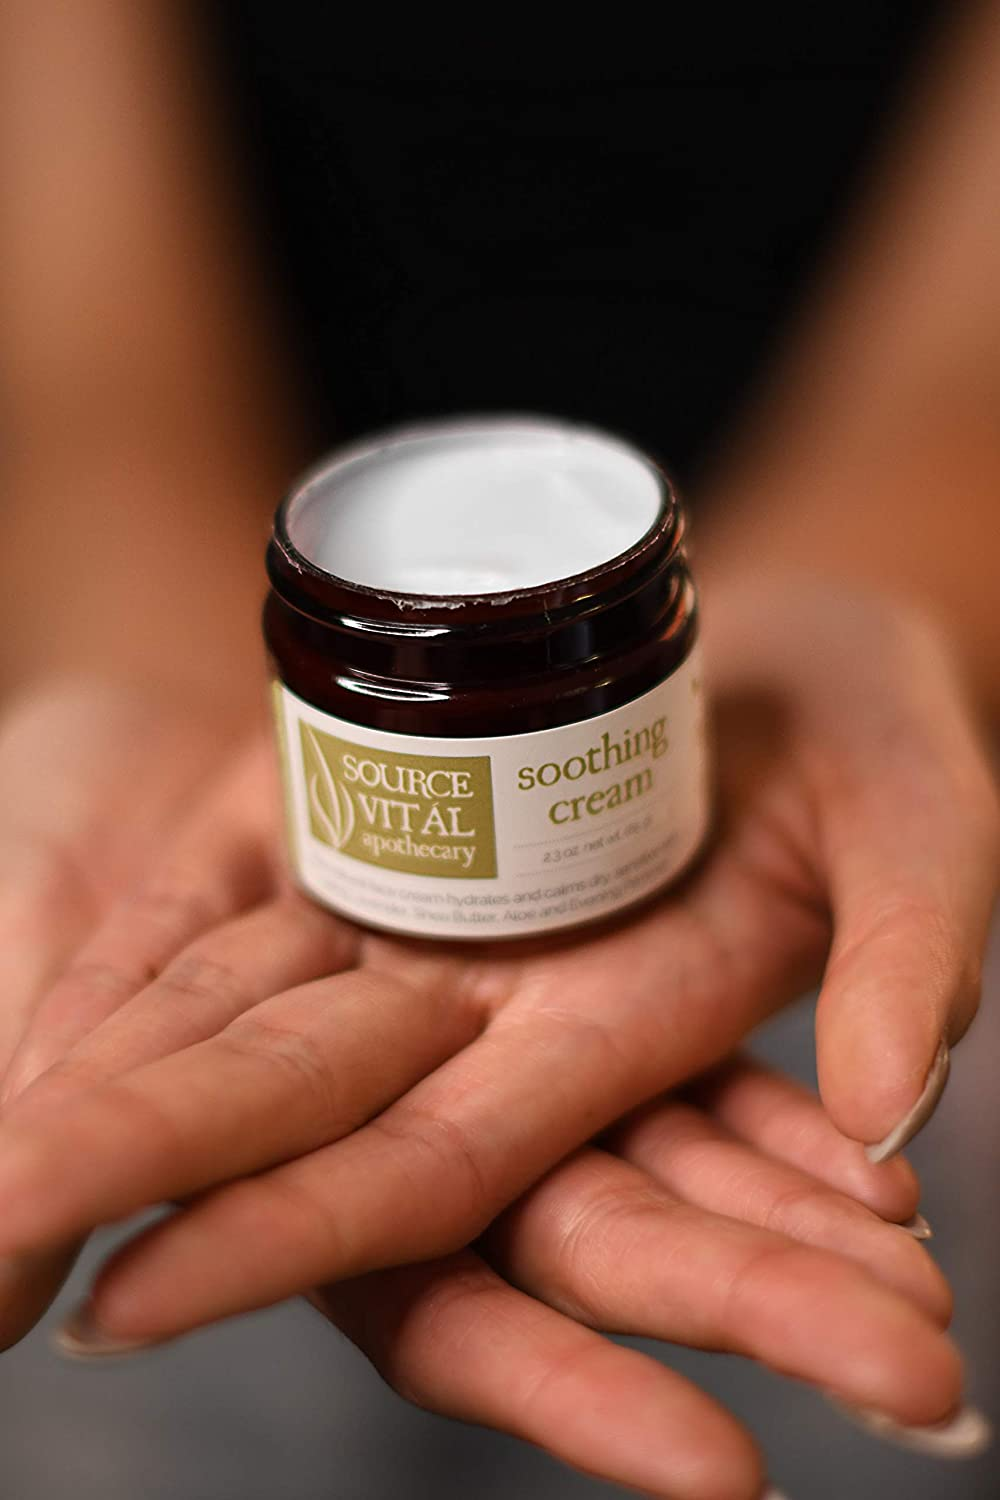 Source Vit l Apothecary Soothing Cream Ultra Soothing Facial Cream For Dry and Sensitive Skin 2.3 oz